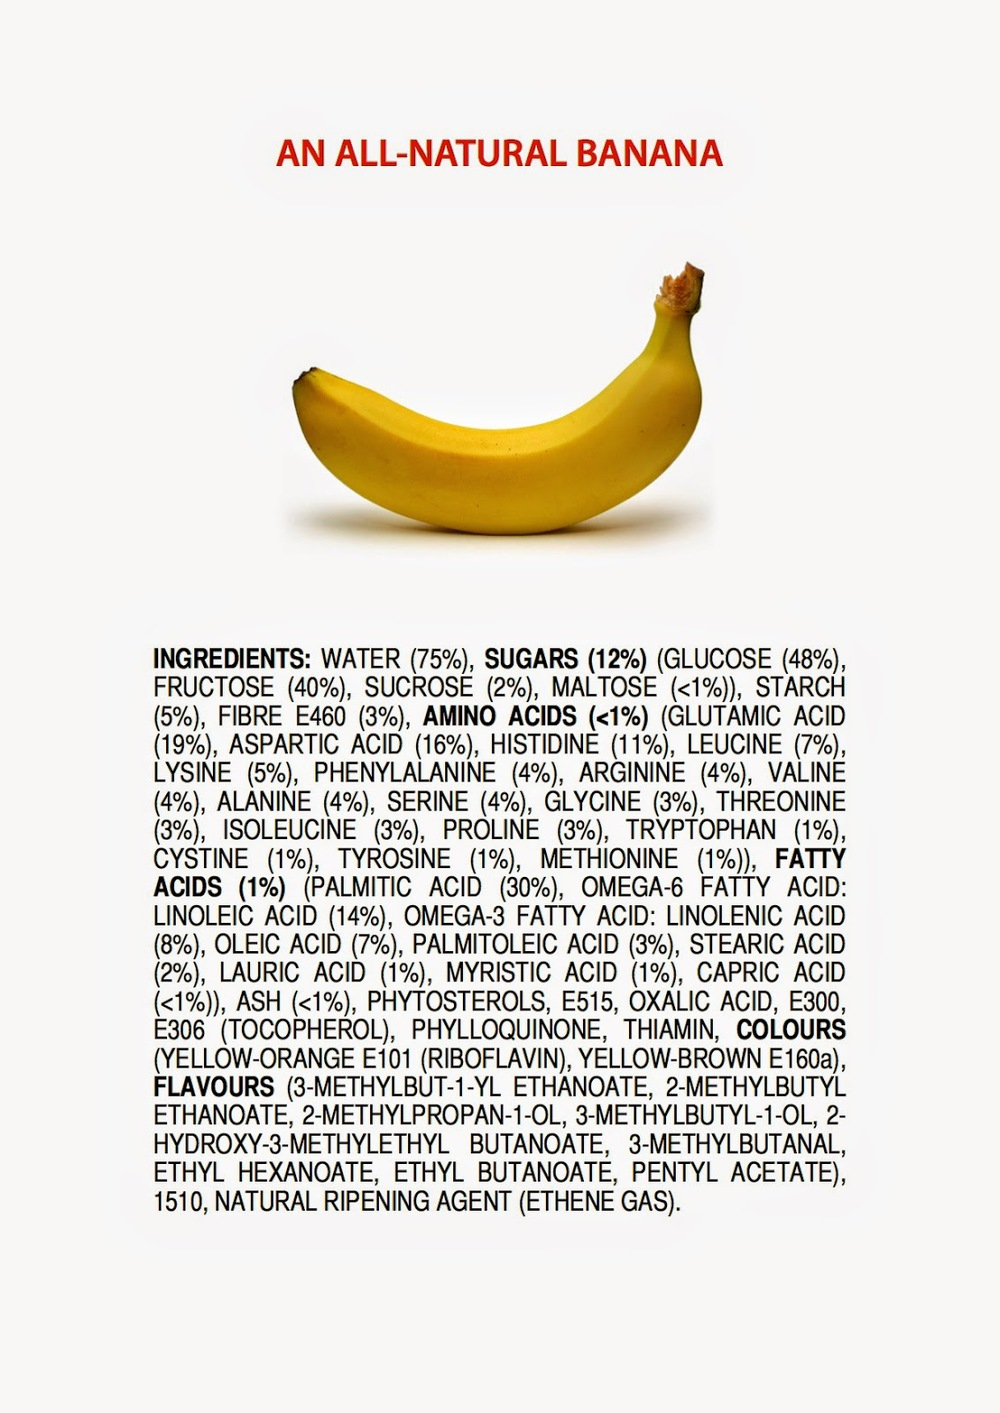 ingredients-of-a-banana-poster-4.jpeg